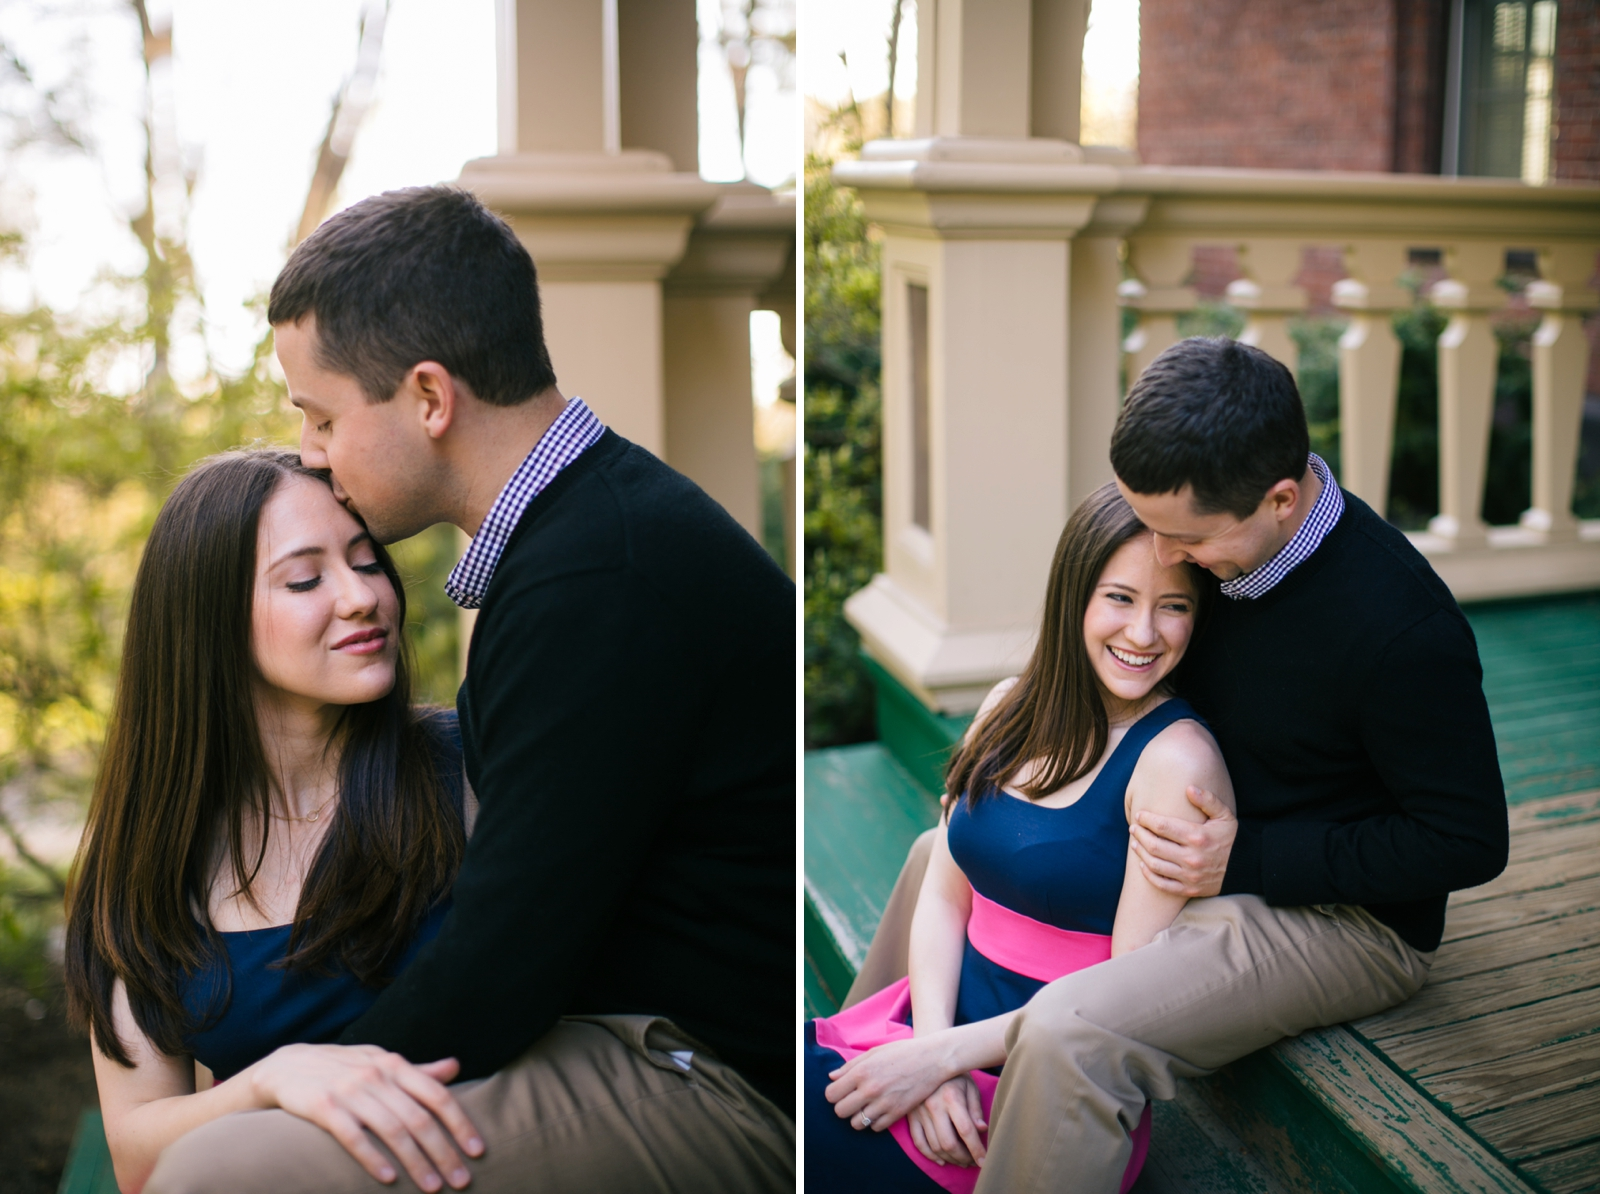 Romantic candid engagement portraits of couple sitting together on stoop on Wellesley campus.